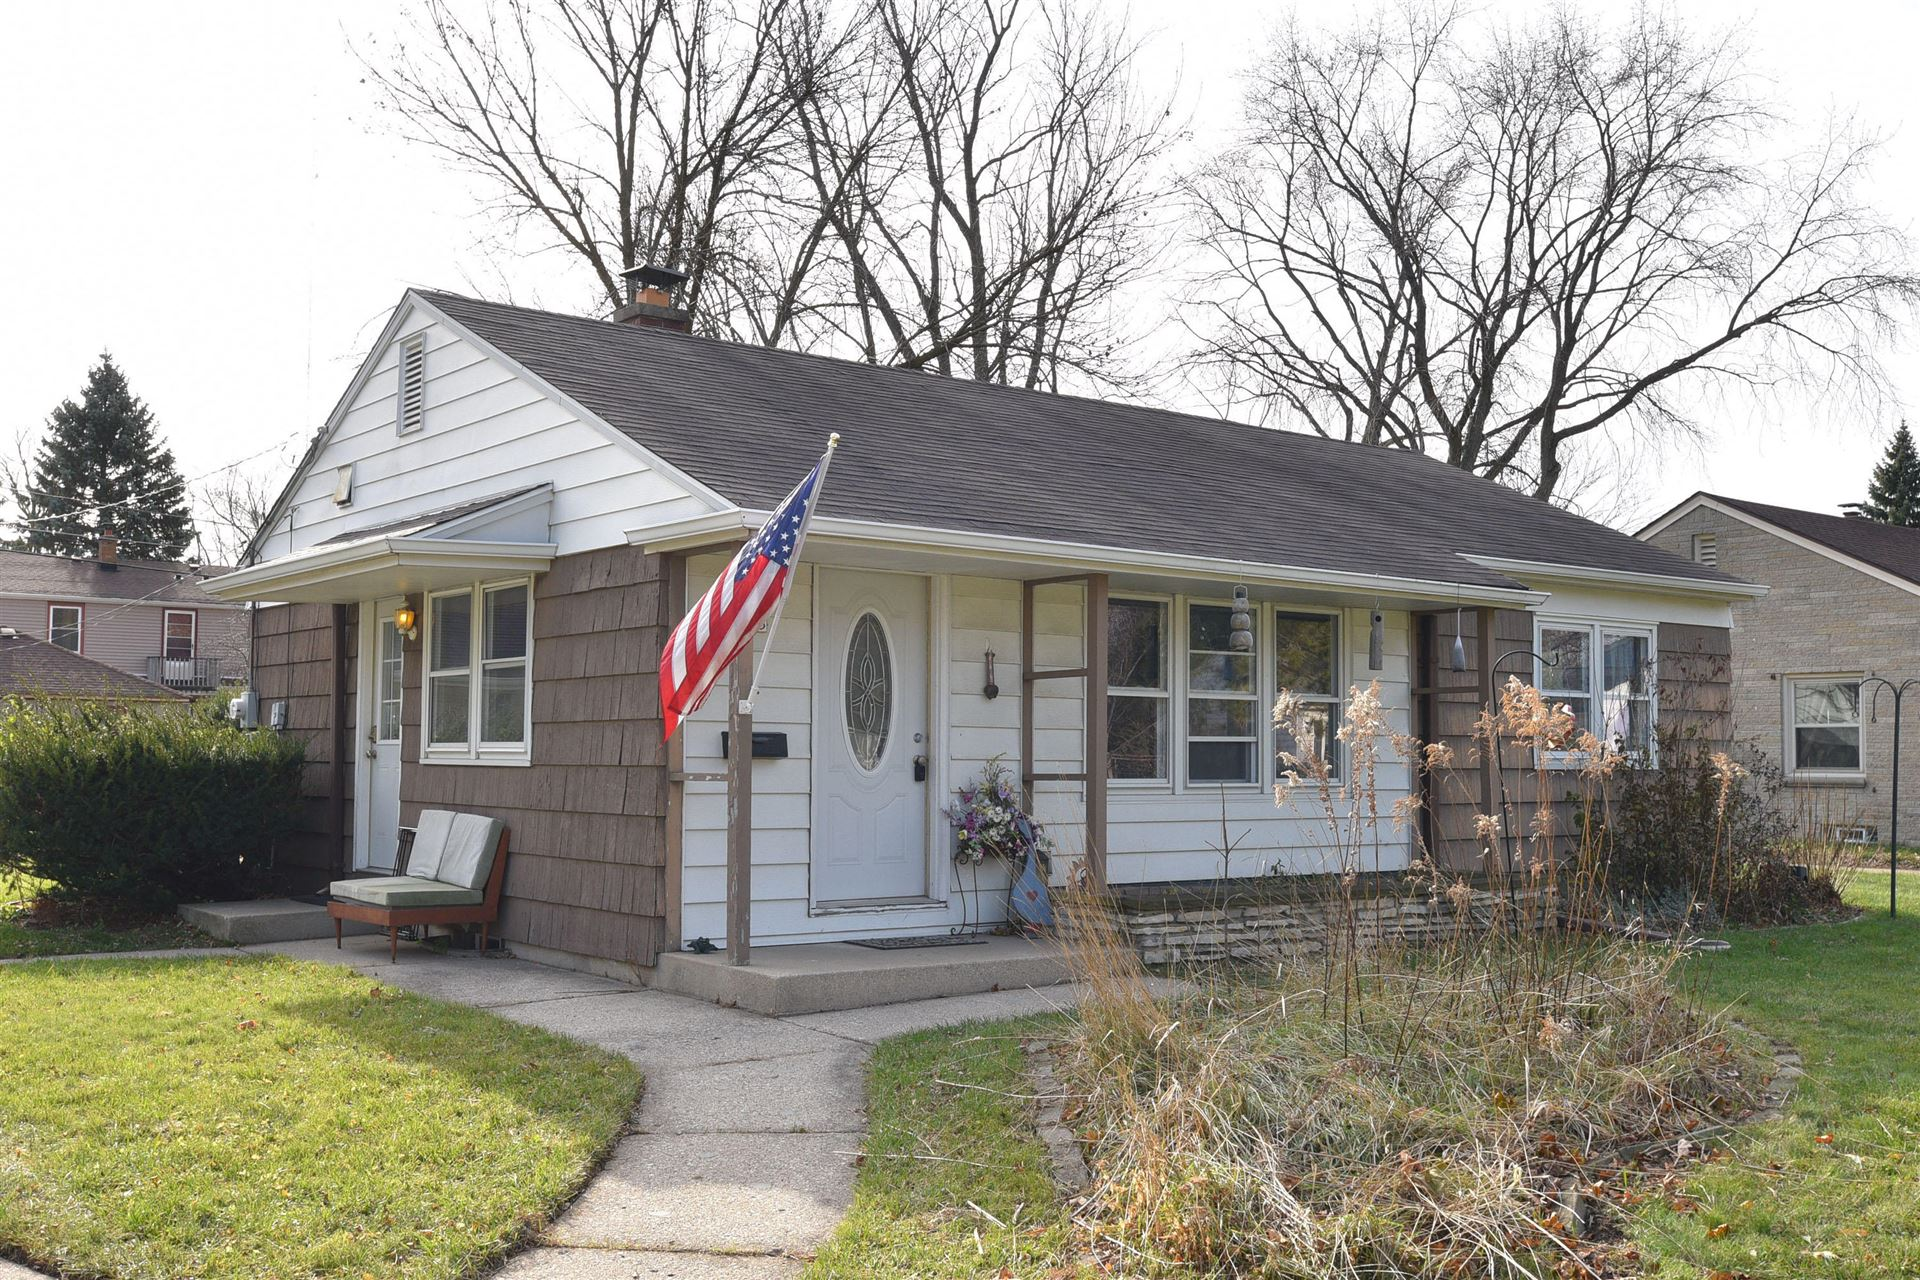 1105 W Kendall Ave, Glendale, WI 53209 - #: 1719025